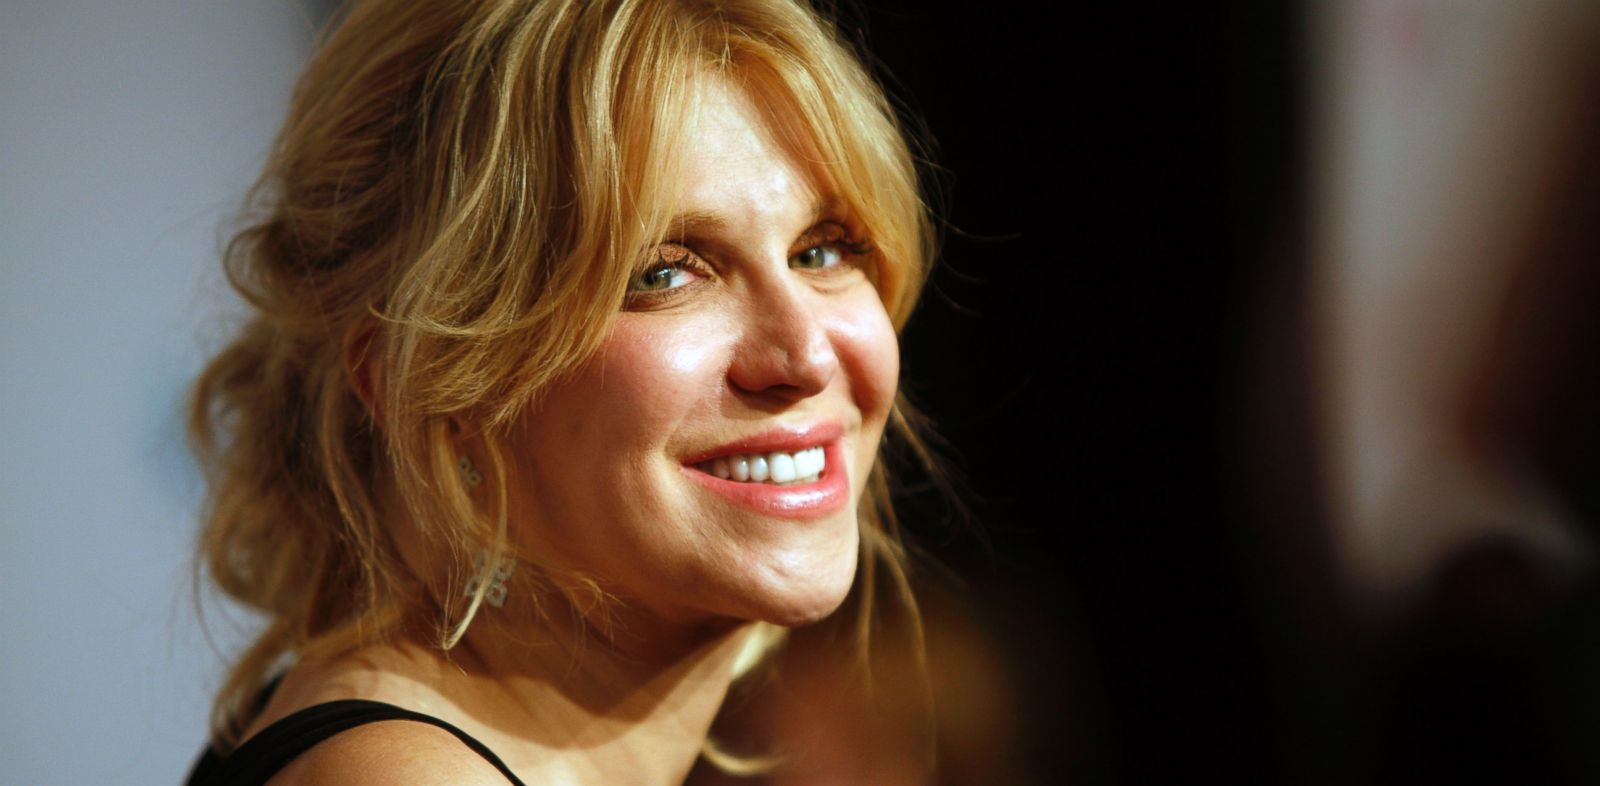 """PHOTO: In this Oct. 15, 2013 file photo, Courtney Love arrives at the Elton John AIDS Foundations 12th Annual """"An Enduring Vision"""" benefit gala at Cipriani Wall Street, in New York."""